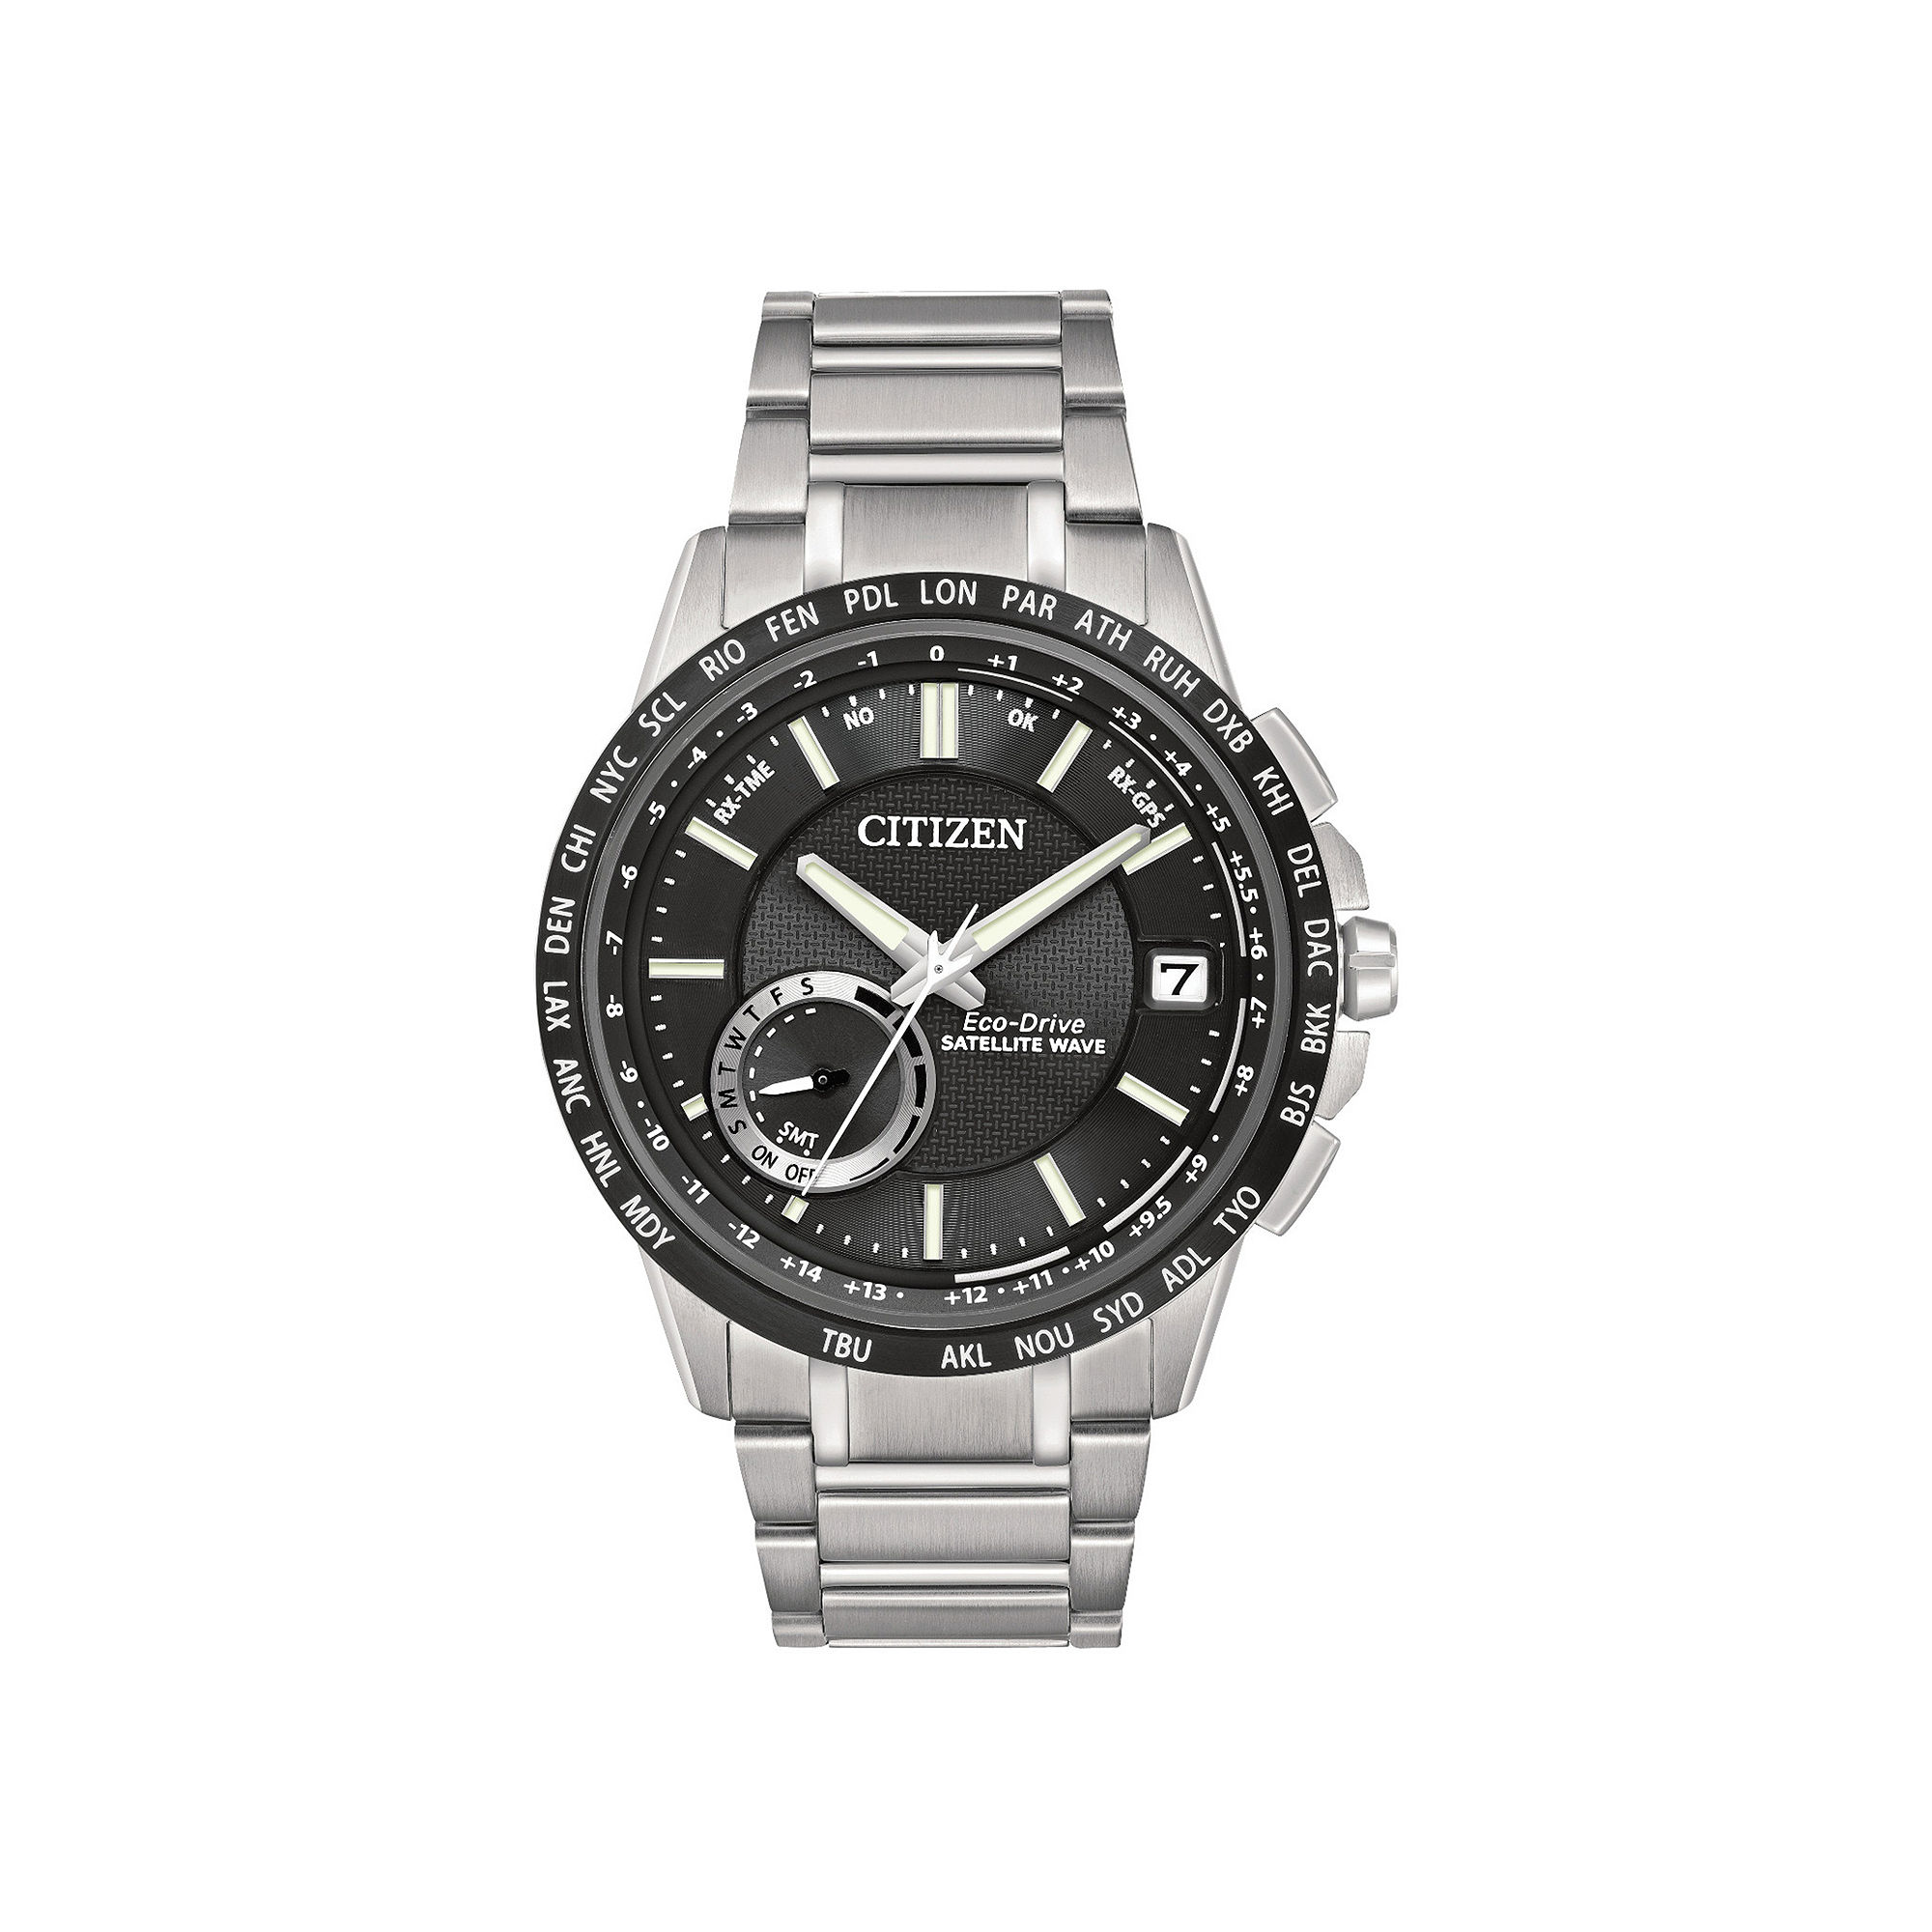 Citizen Eco-Drive Satellite Wave-World Time GPS Mens Watch CC3005-85E